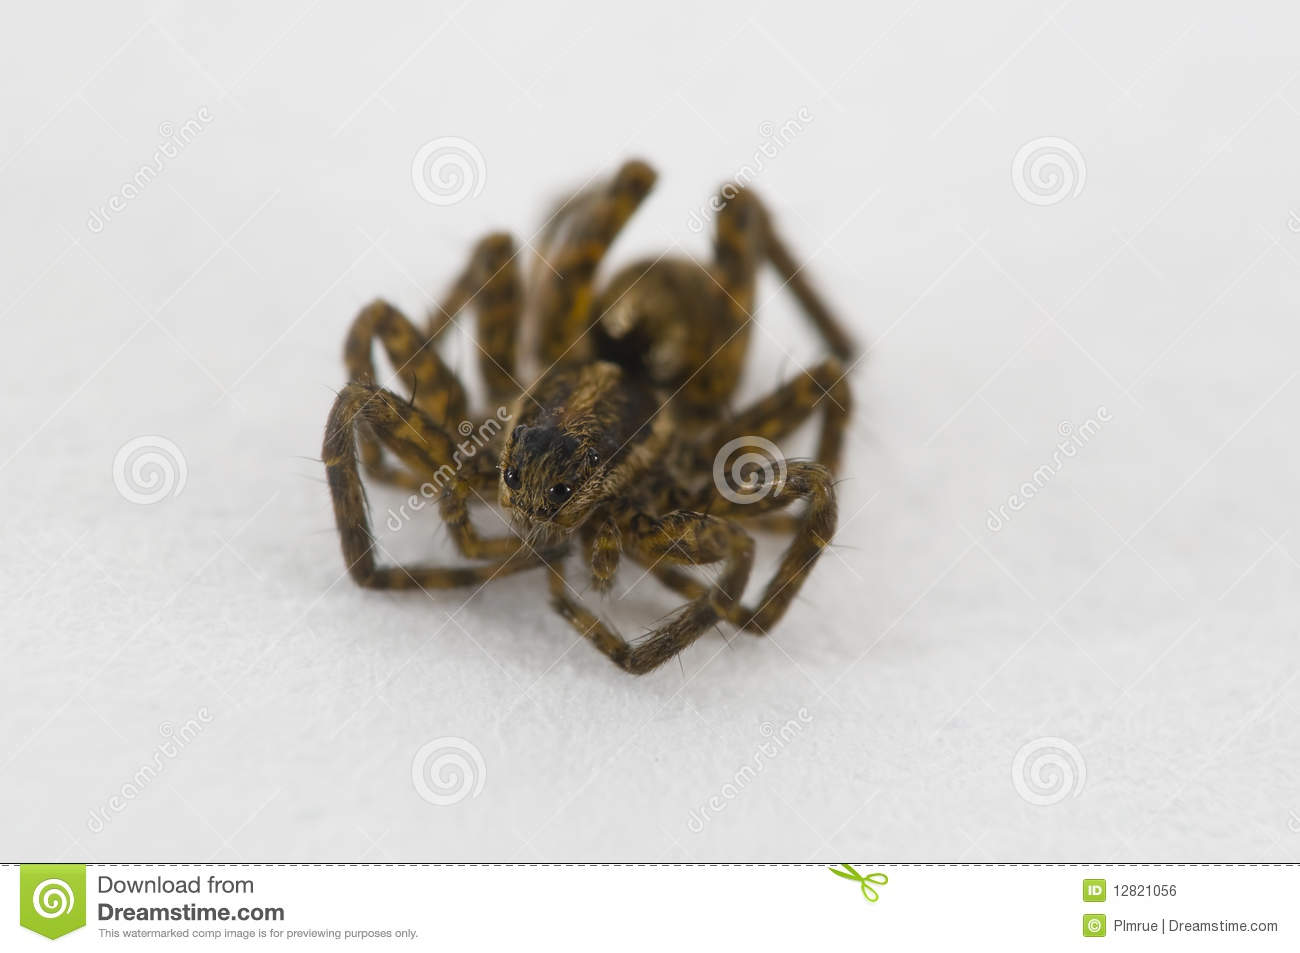 Baby Spider Royalty Free Stock Image - Image: 12821056